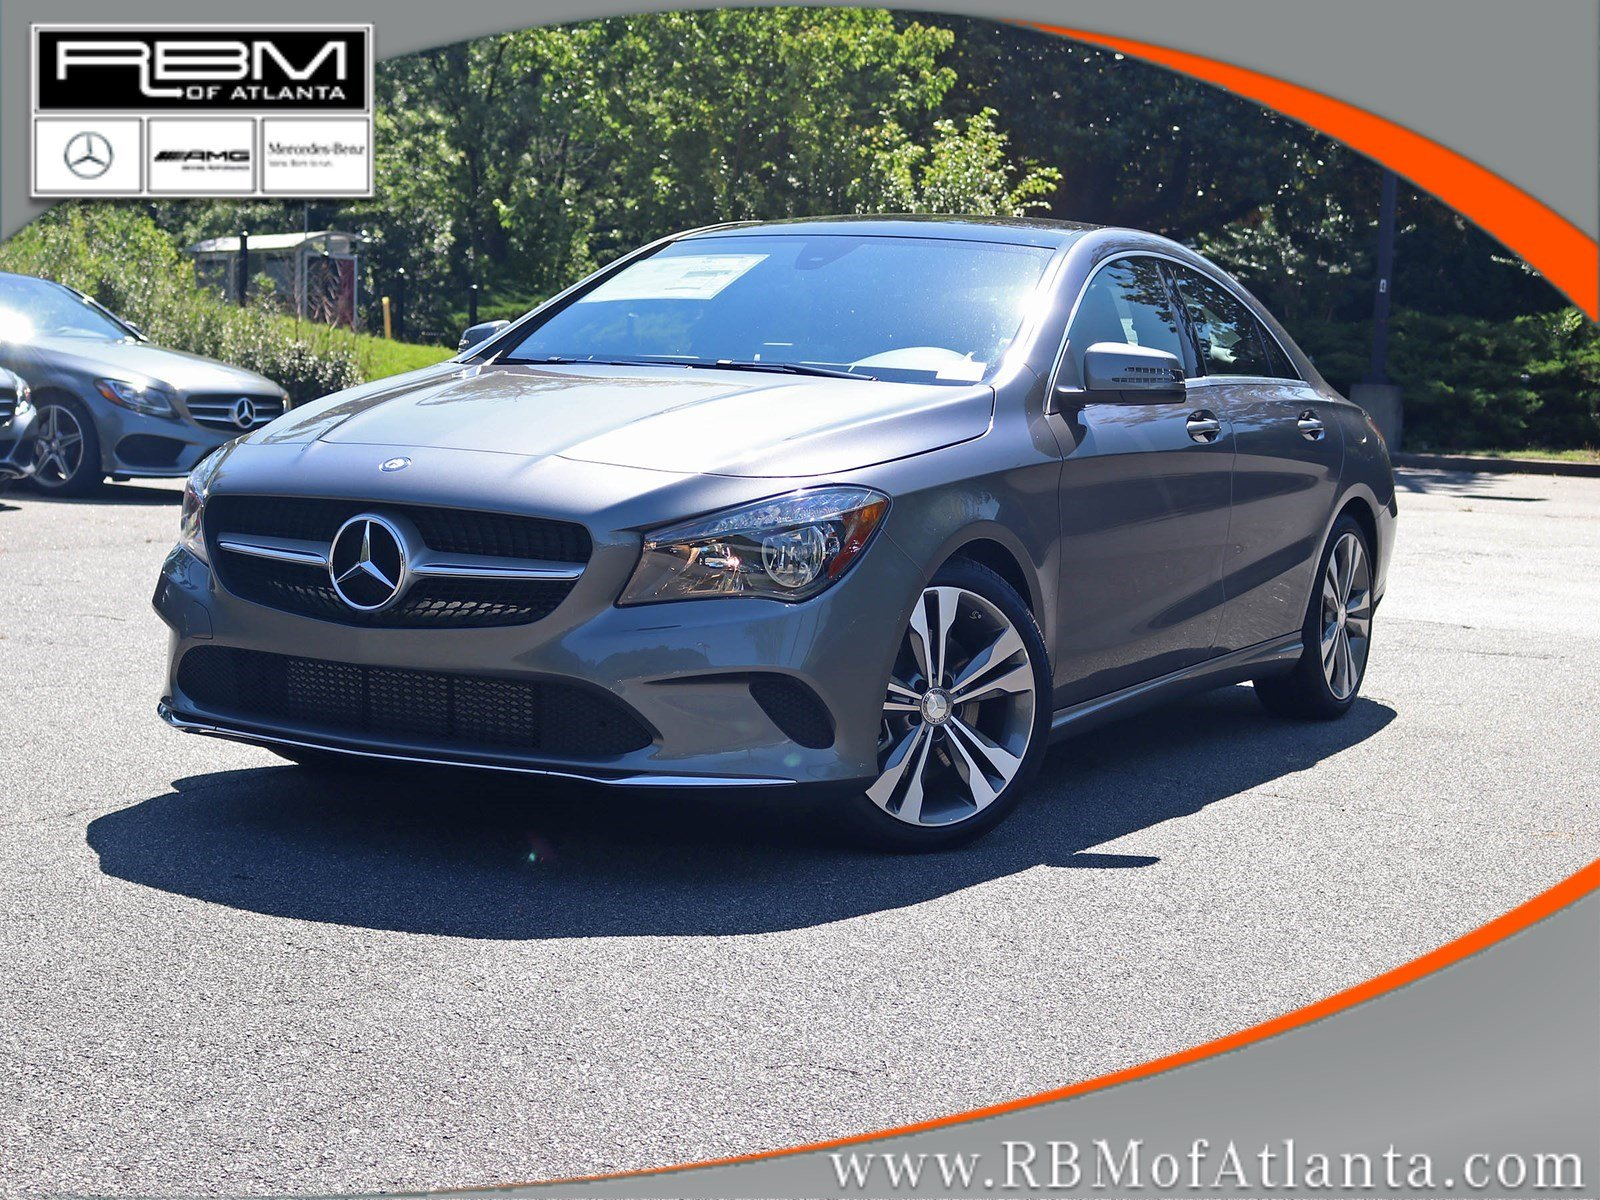 New 2018 mercedes benz cla cla 250 coupe in atlanta for Rbm mercedes benz